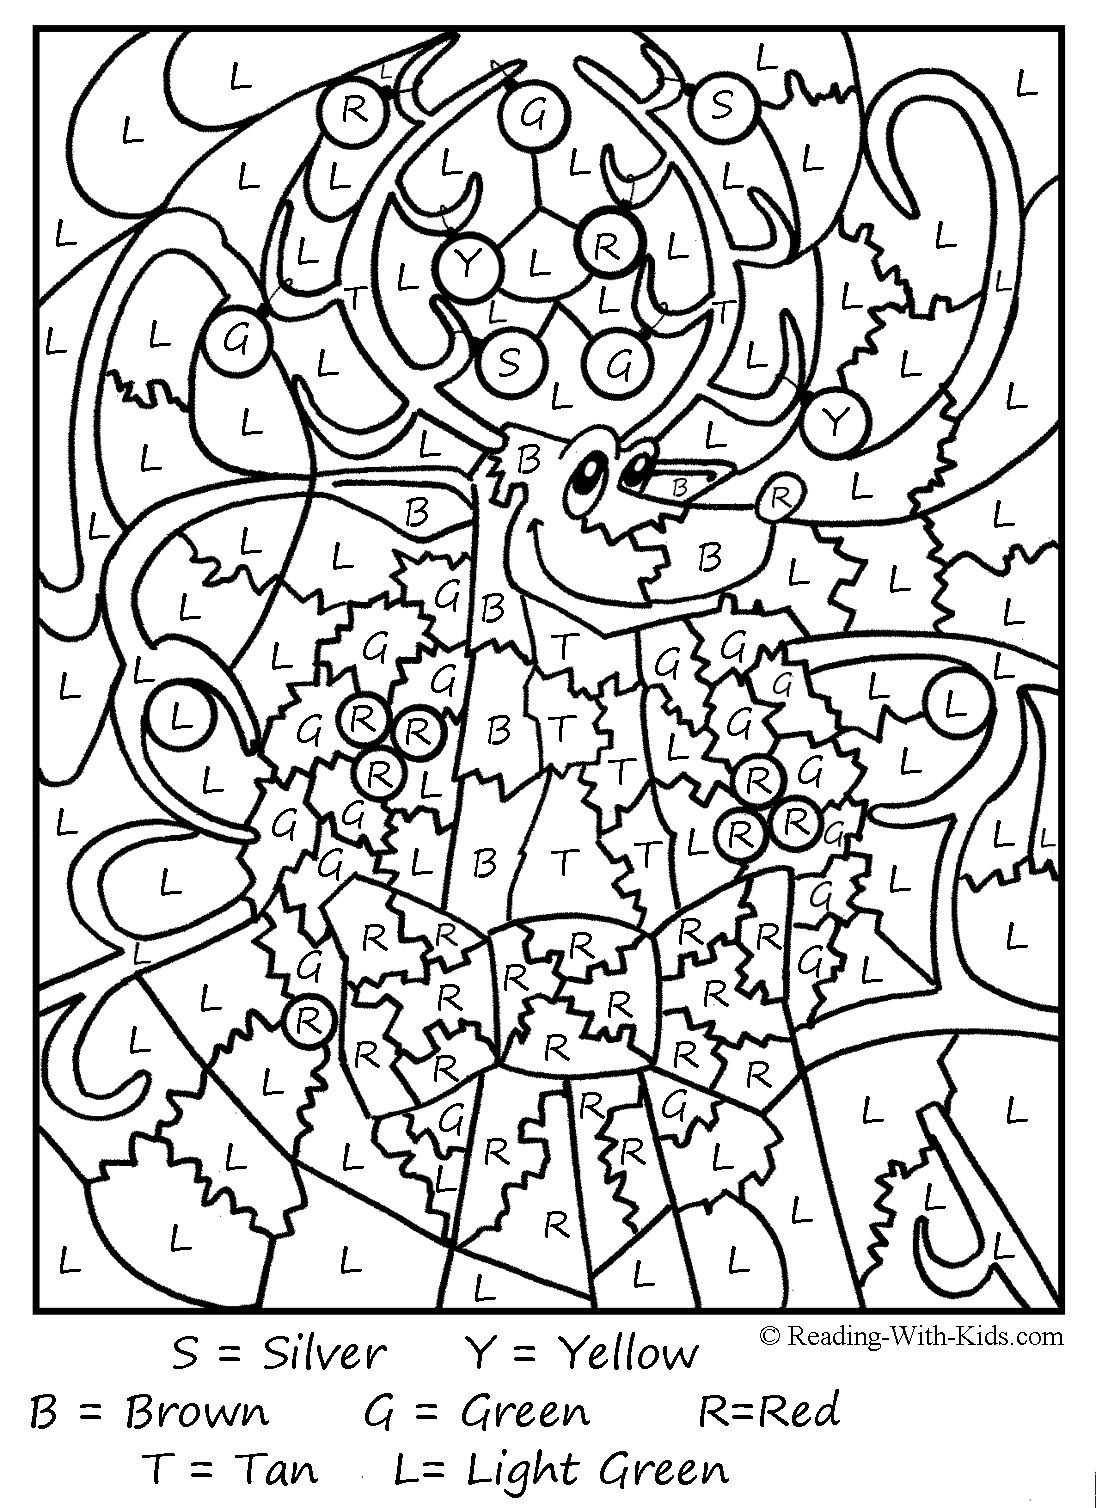 Uncategorized Christmas Color By Number Coloring Pages color by letter and number coloring pages are fun and